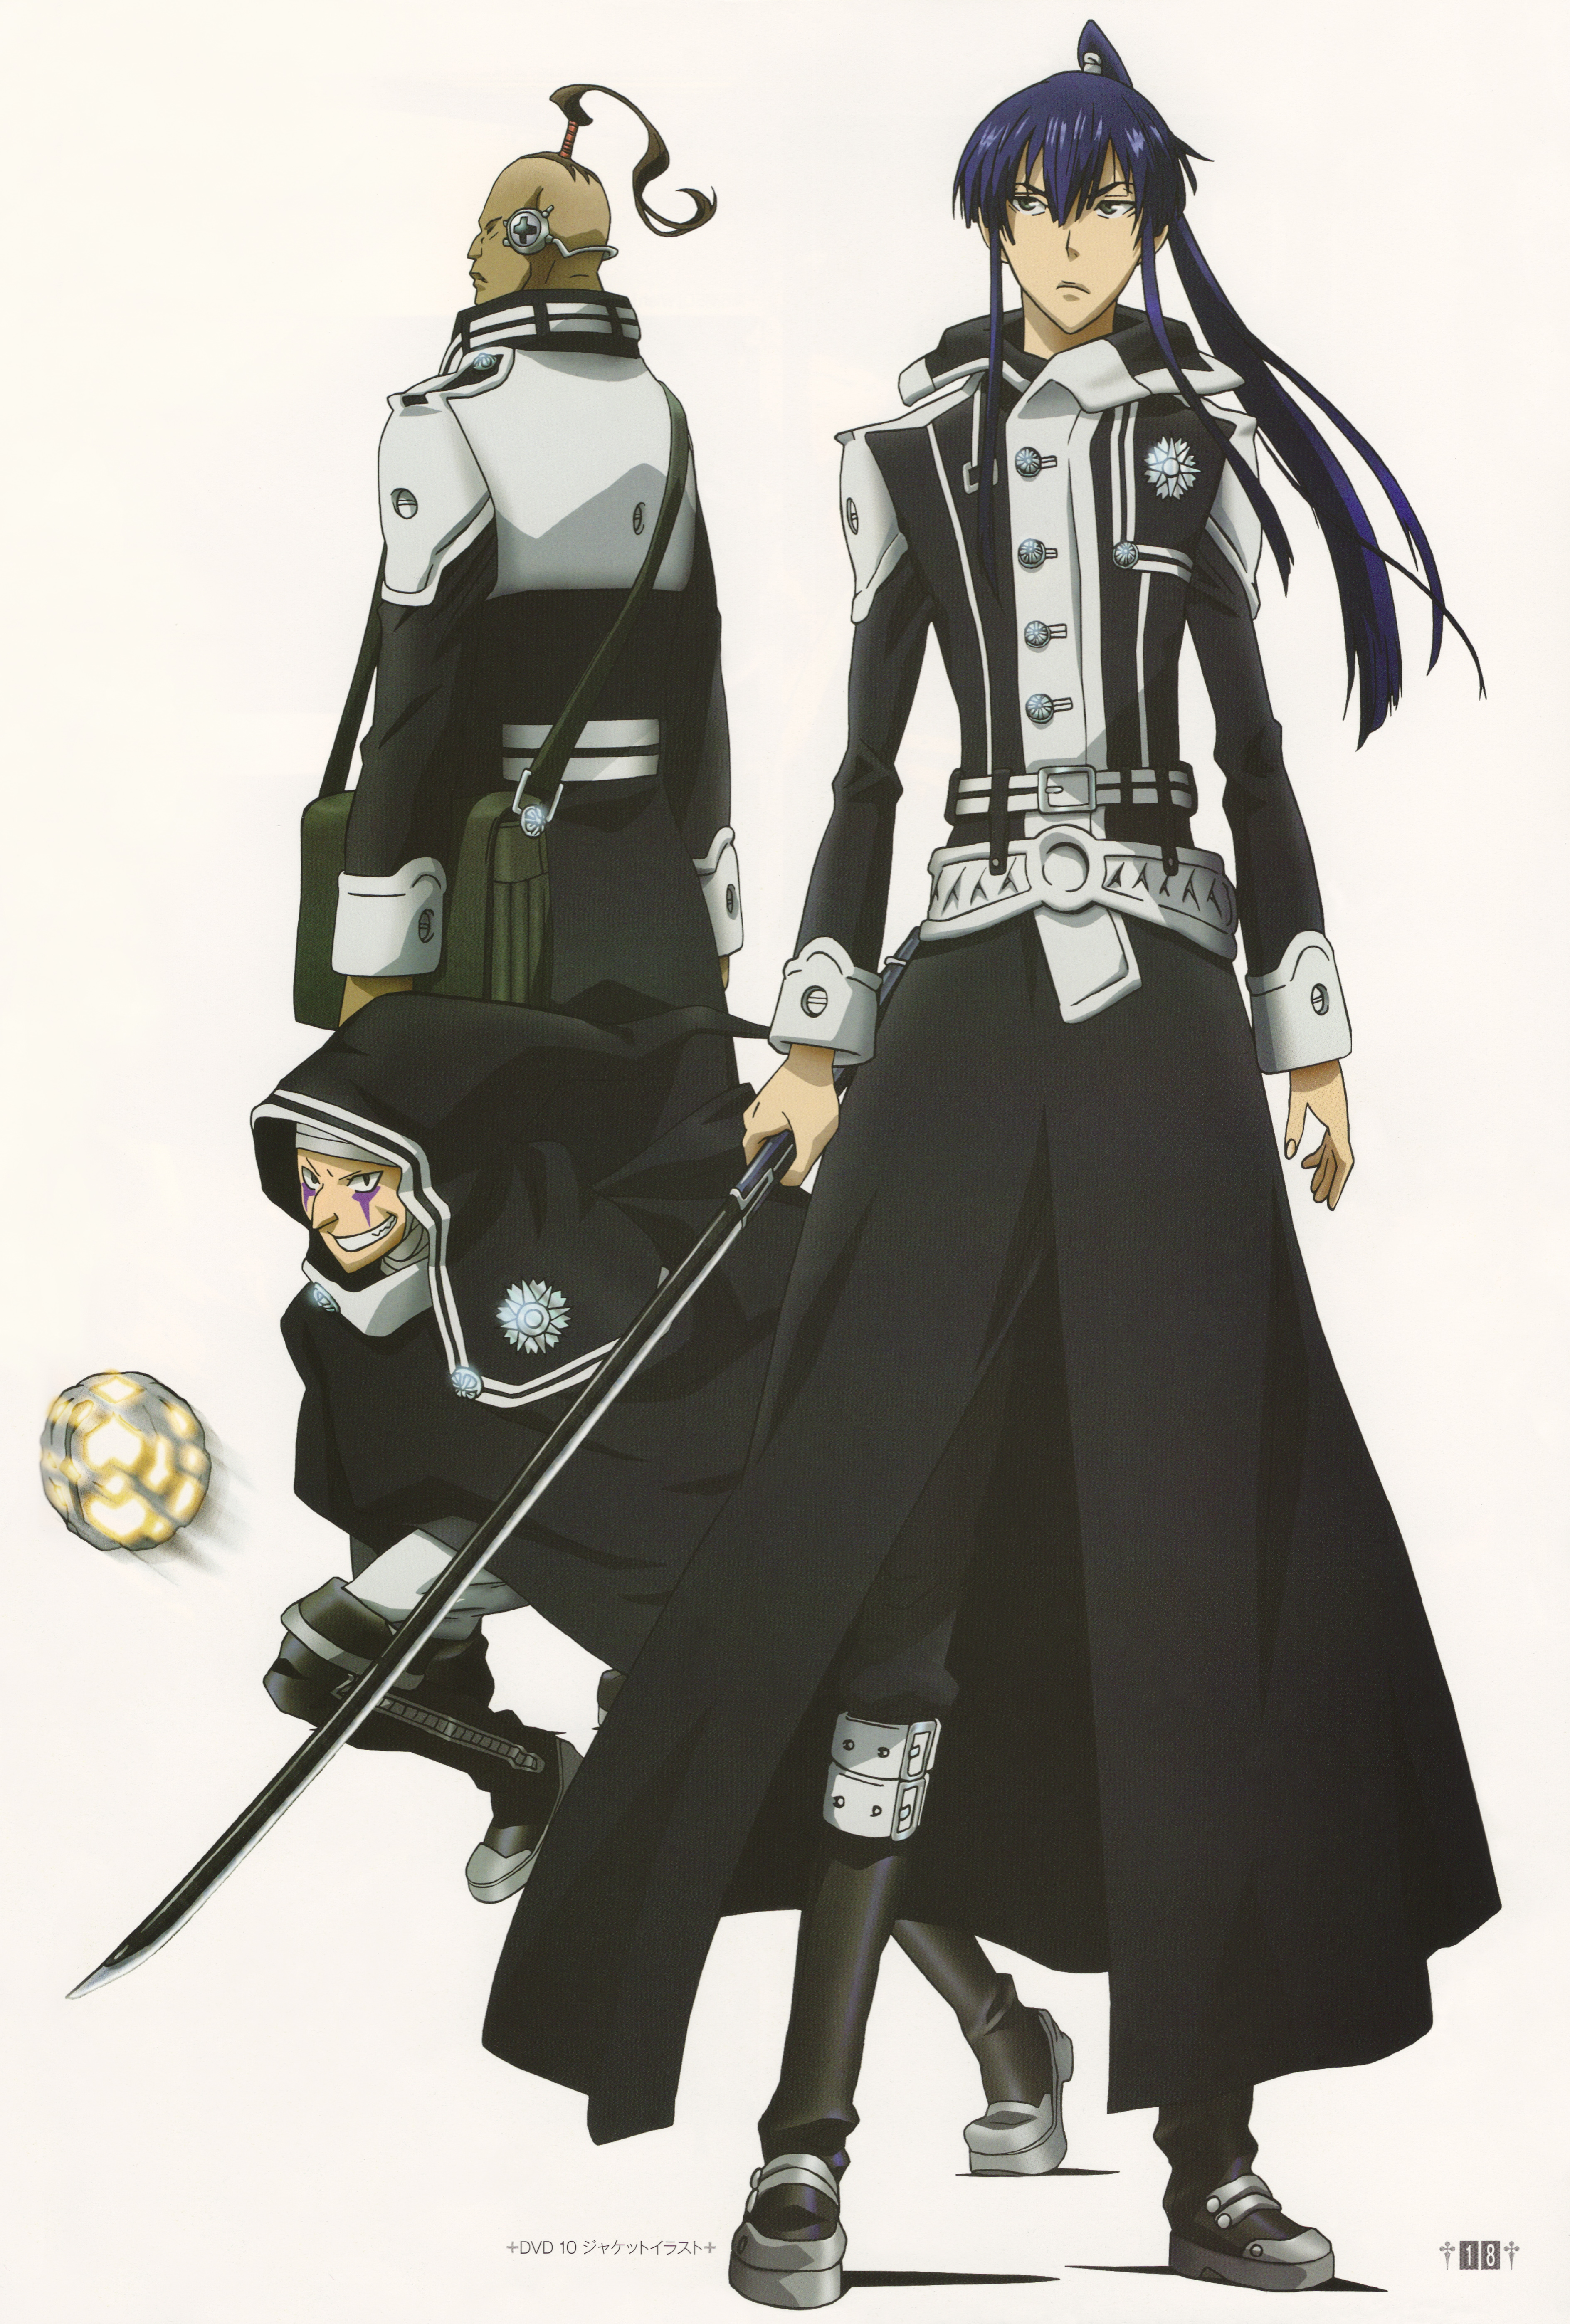 Daisya barry d gray man zerochan anime image board - D gray man images ...